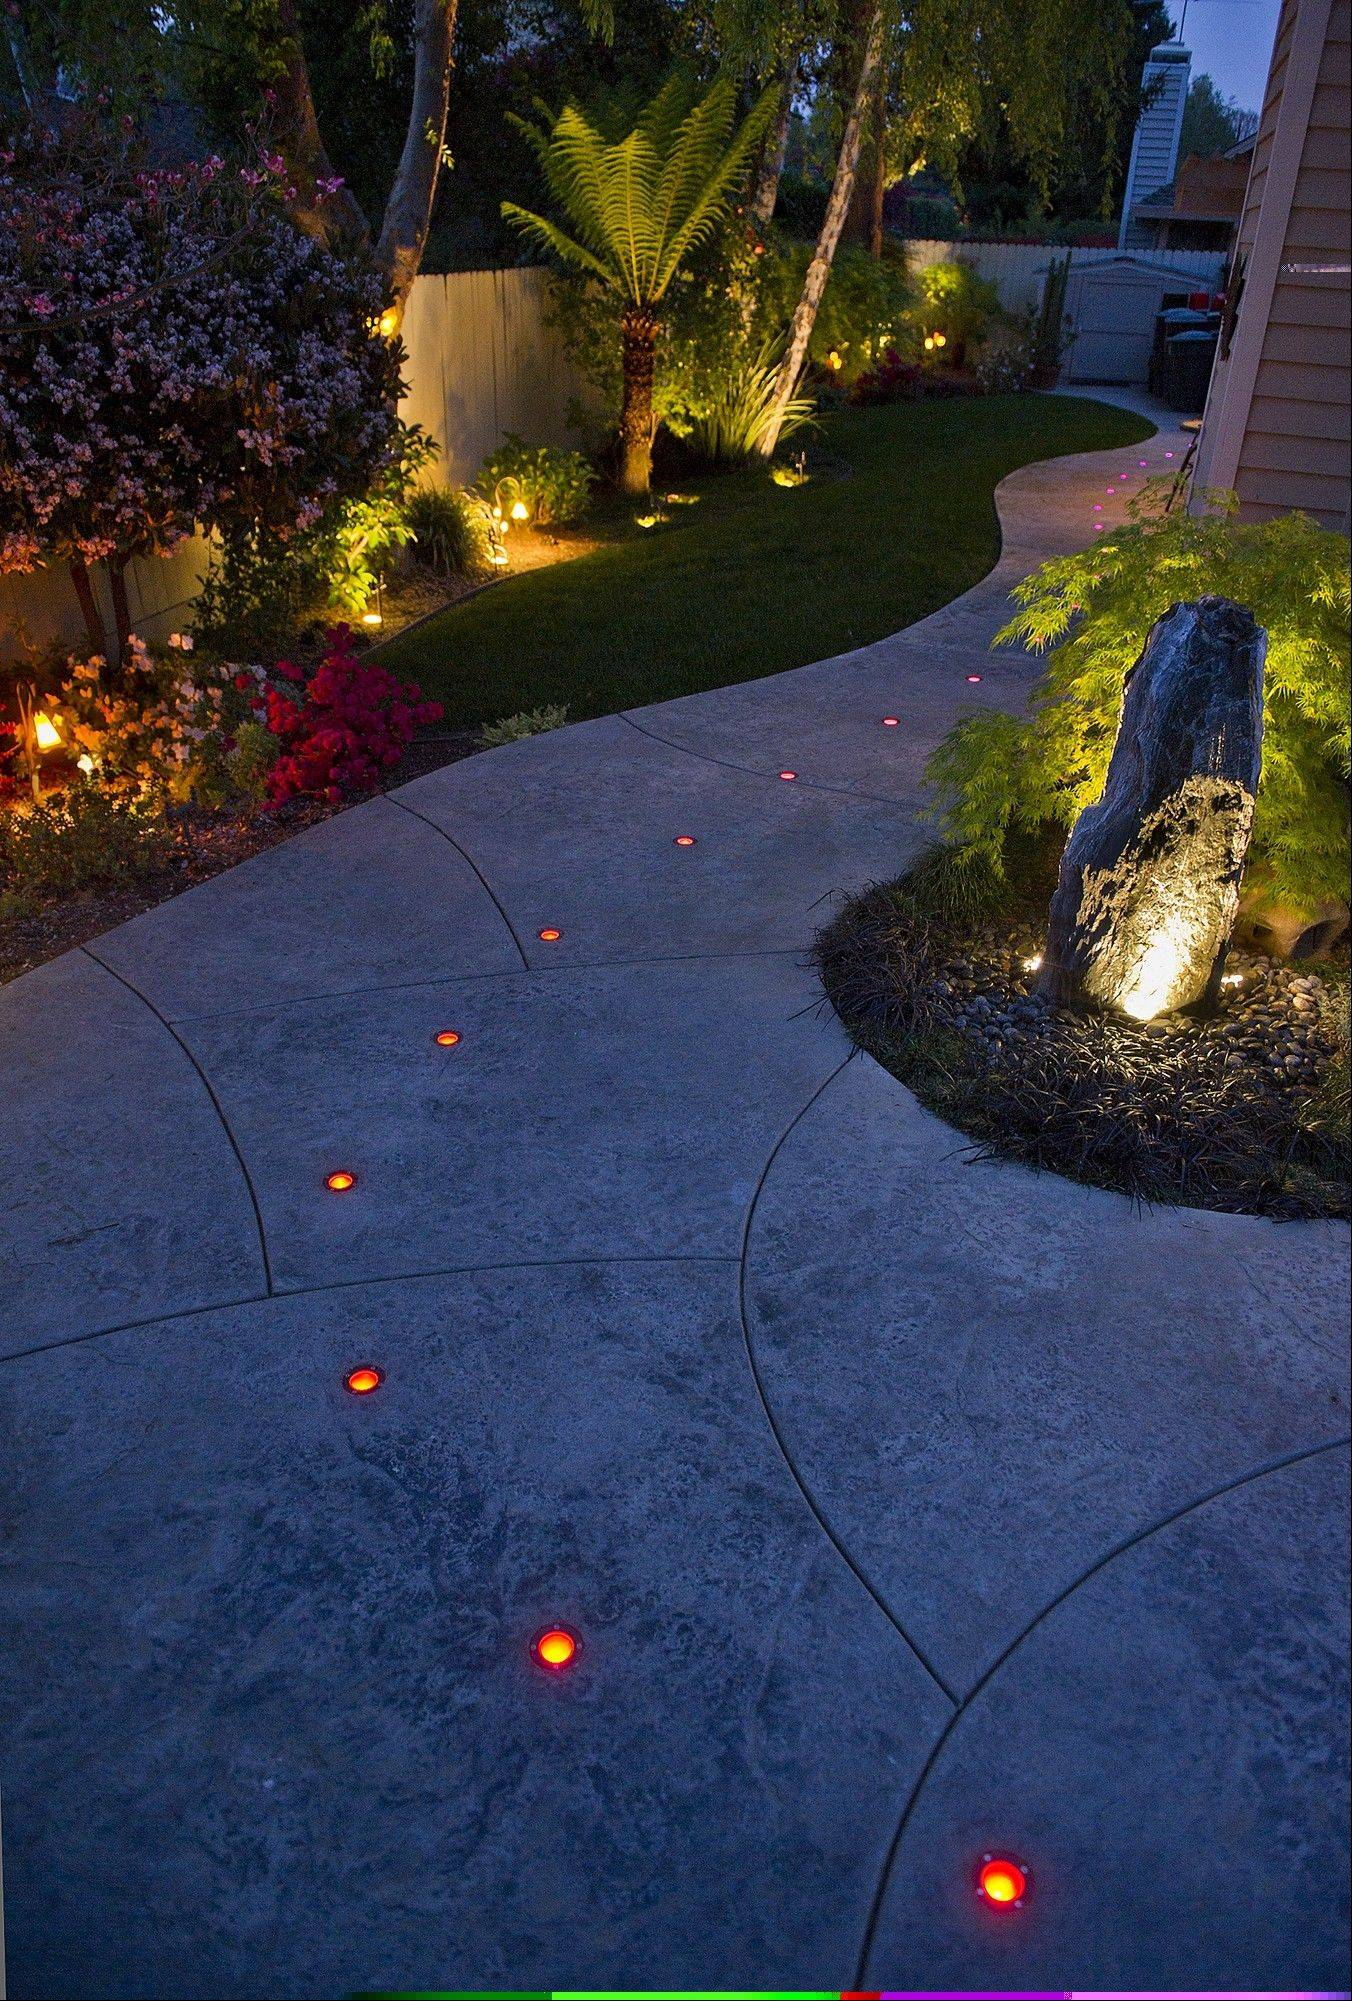 Color-changing LEDs mark a path through Michael Sestak's backyard. Other LEDs highlight plants and a granite fountain.